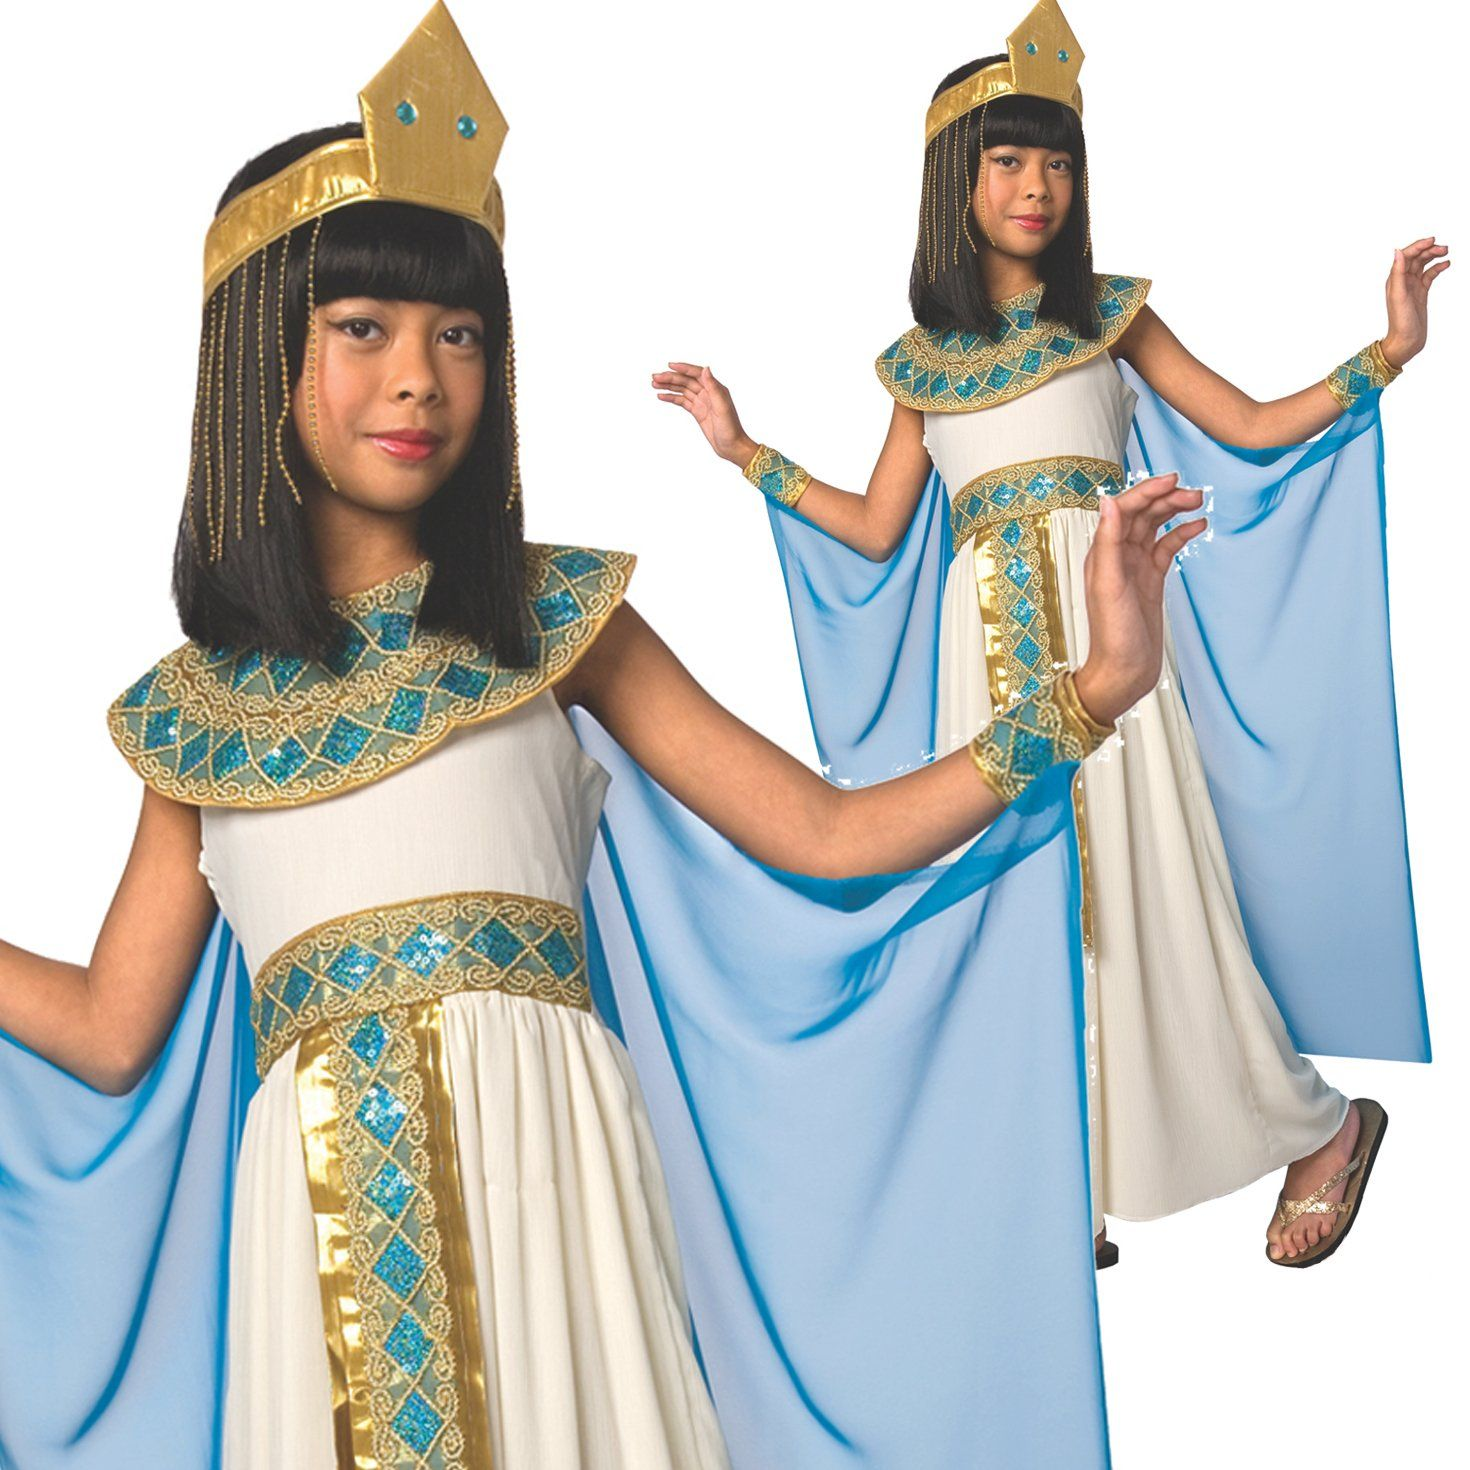 Girls Childs Cleopatra Costume Egyptian Princess Queen Fancy Dress Outfit